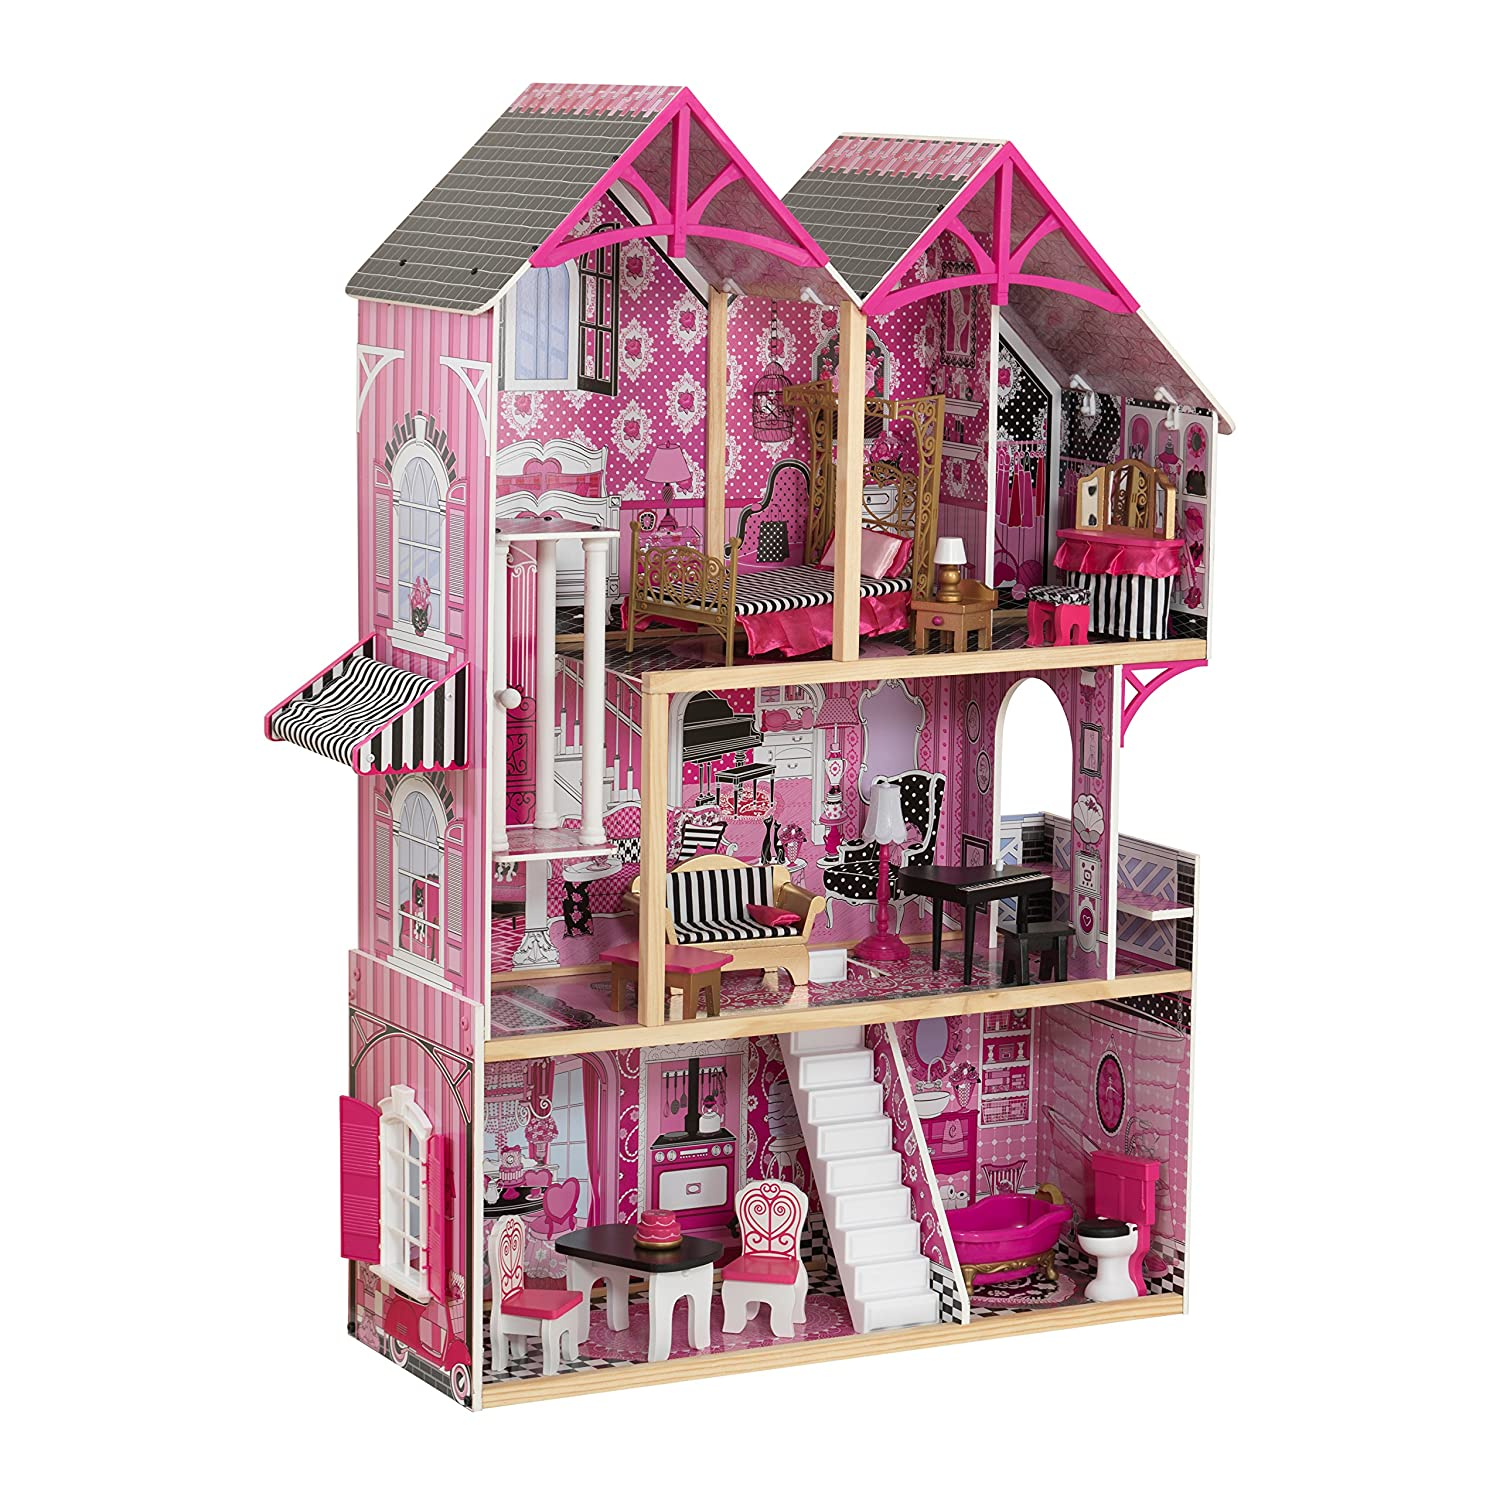 jetzt barbie haus holz mit licht und soundeffekten. Black Bedroom Furniture Sets. Home Design Ideas